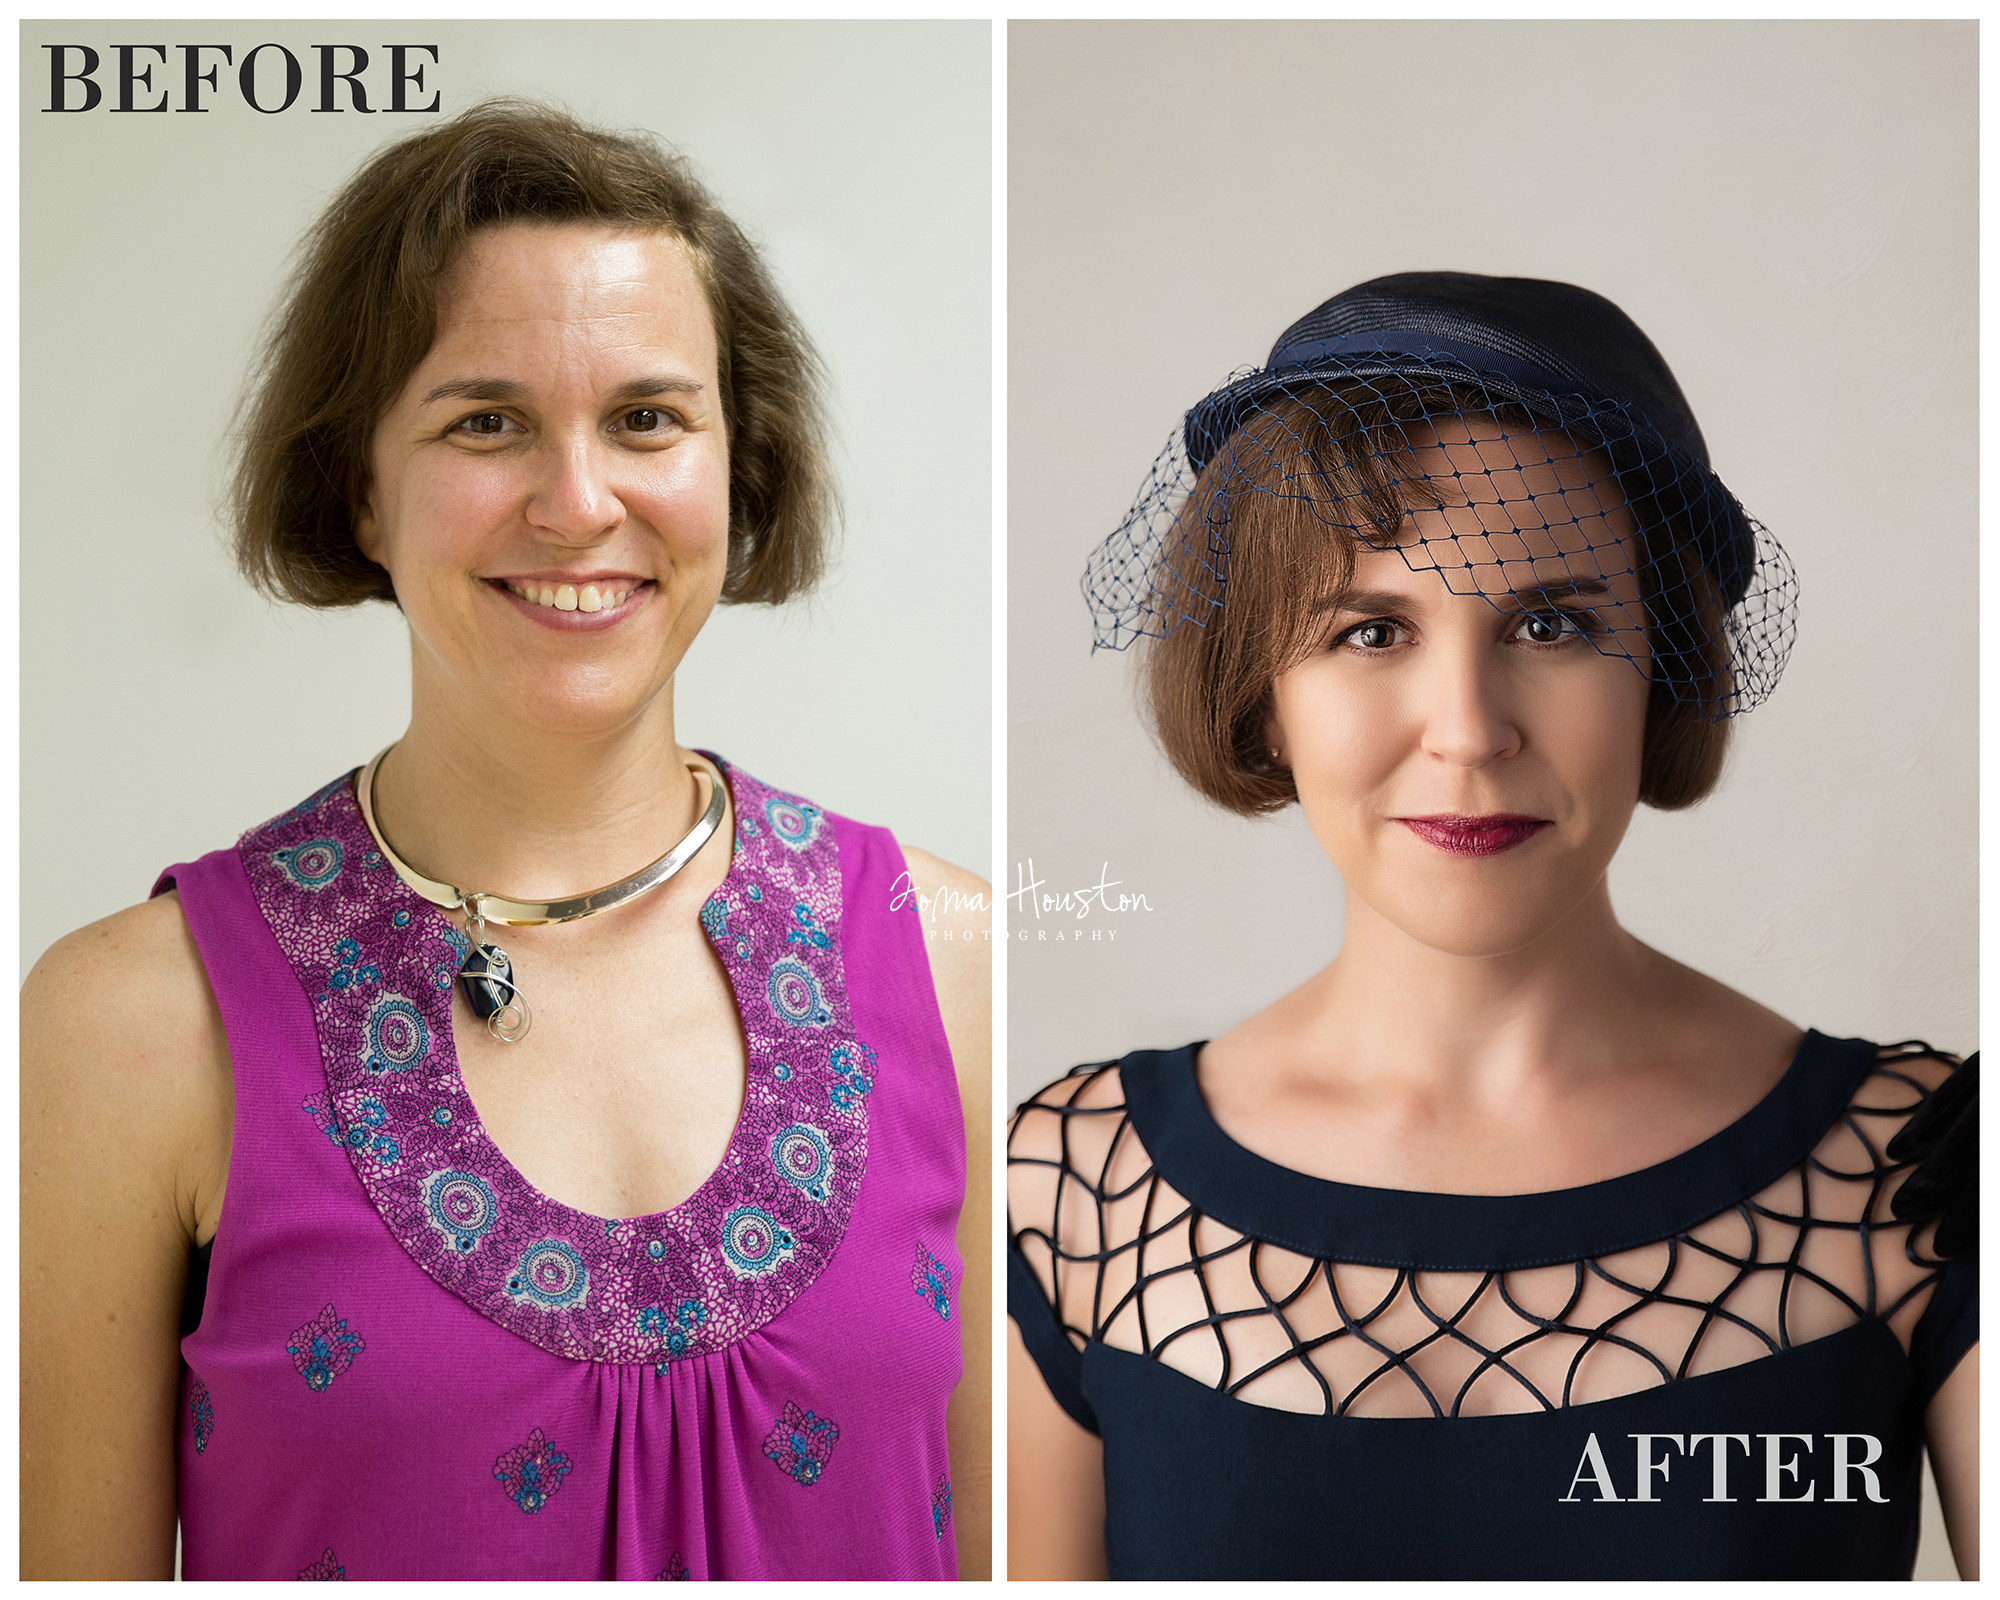 Alison Before and After | Toma Houston Photography Chicago